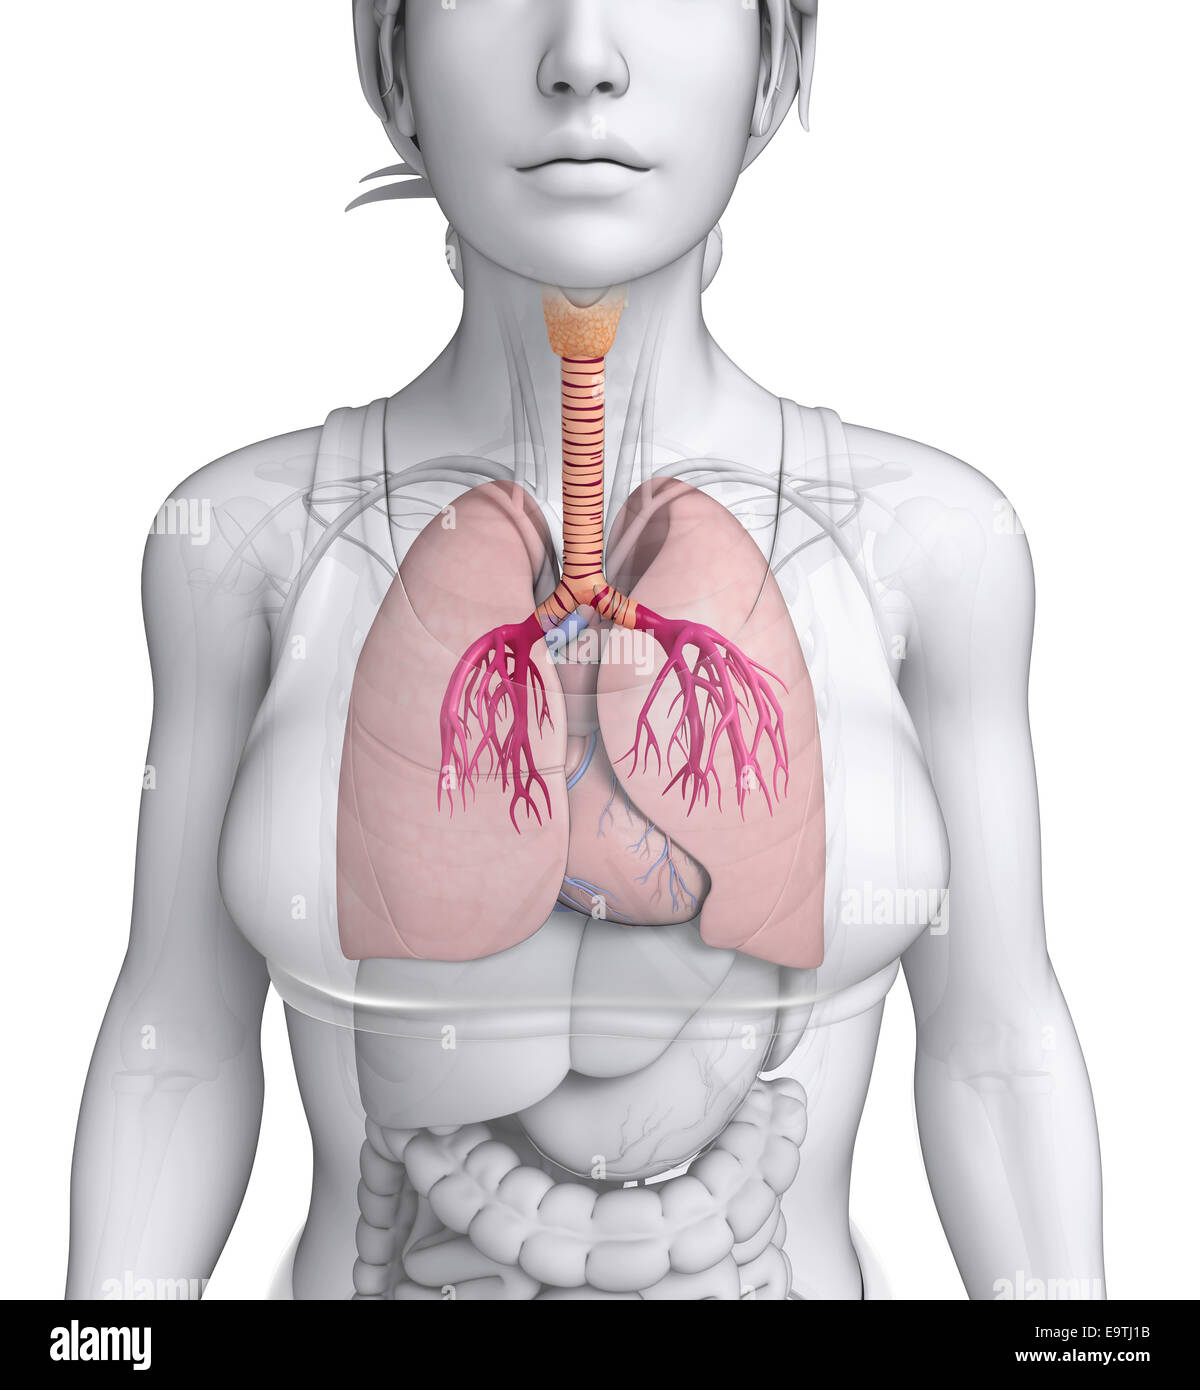 Illustration of Female throat anatomy Stock Photo: 74914375 - Alamy